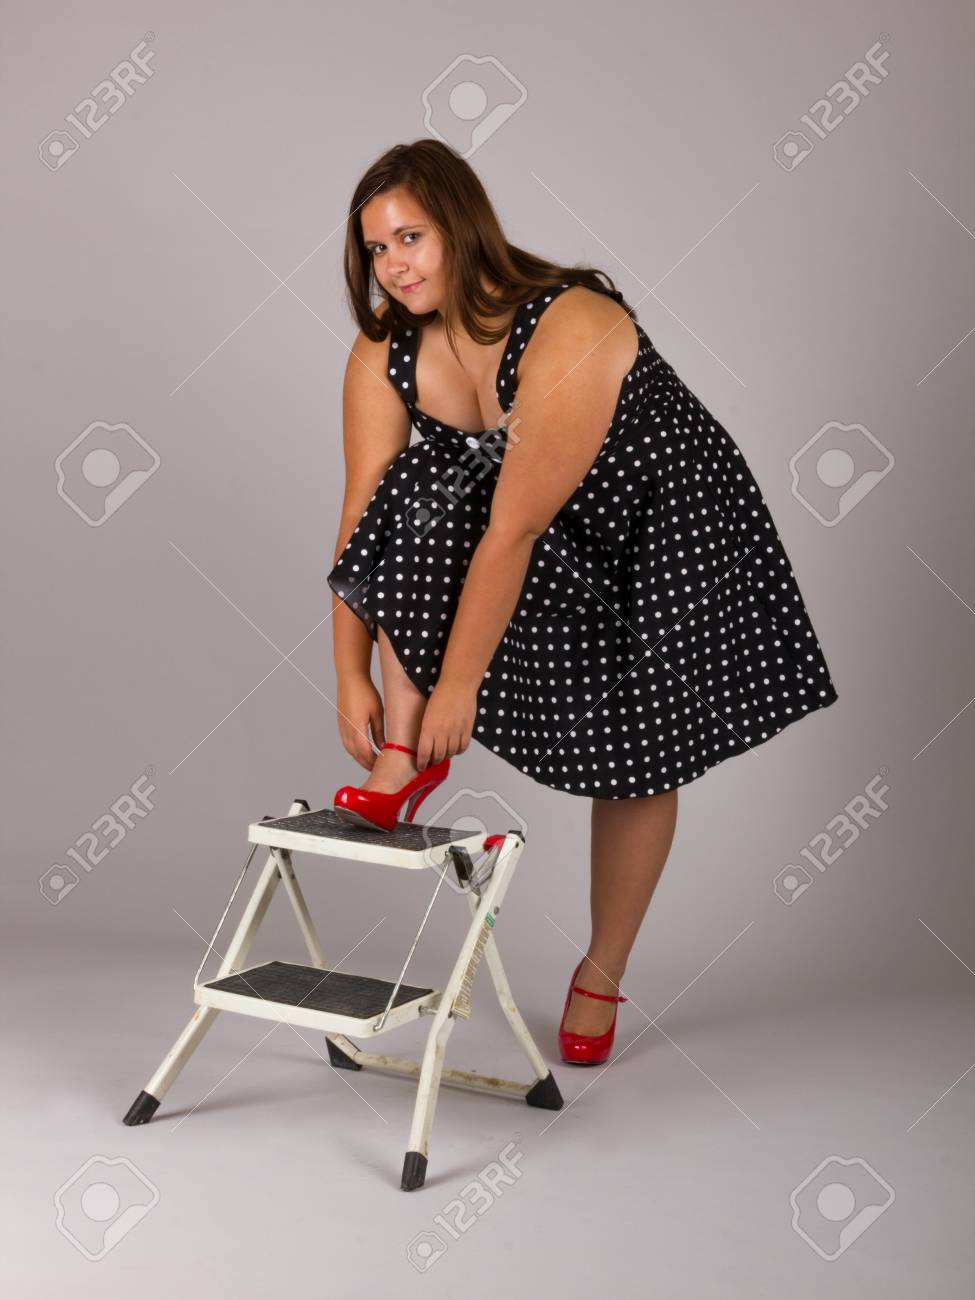 Beautiful Curvy Teenage Girl In Polkadot Dress And Red Heels Stock Photo Picture And Royalty Free Image Image 95330002